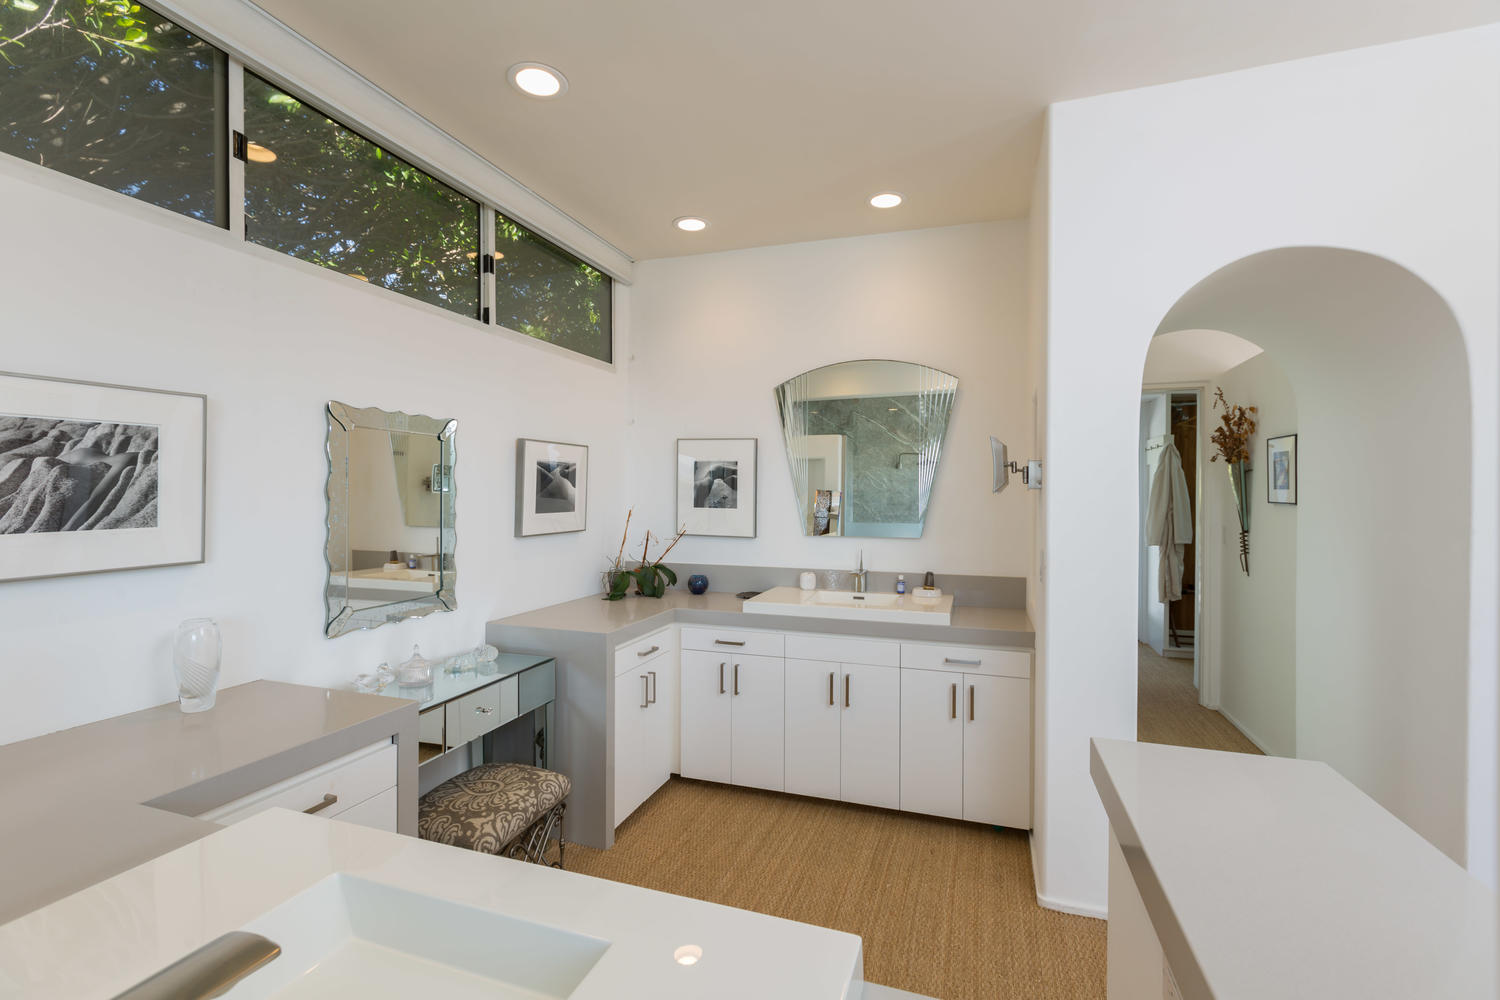 LDN NW Master bathroom sink area.jpg